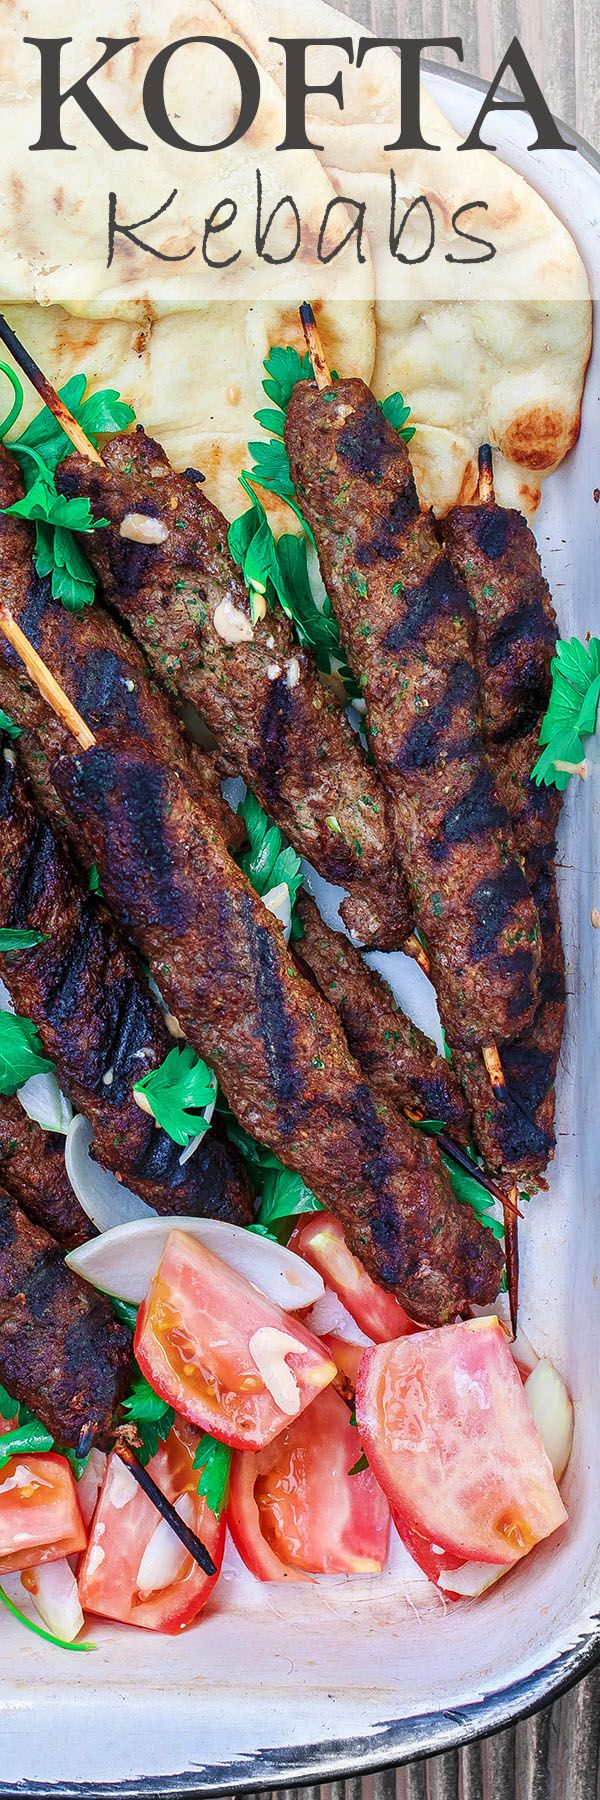 Kofta Kebab Recipe   The Mediterranean Dish. Authentic kofta kebabs with ground beef and lamb, garlic, onions, fresh parsley and warm Middle Eastern spices. See the step-by-step tutorial on The Mediterranean Dish.